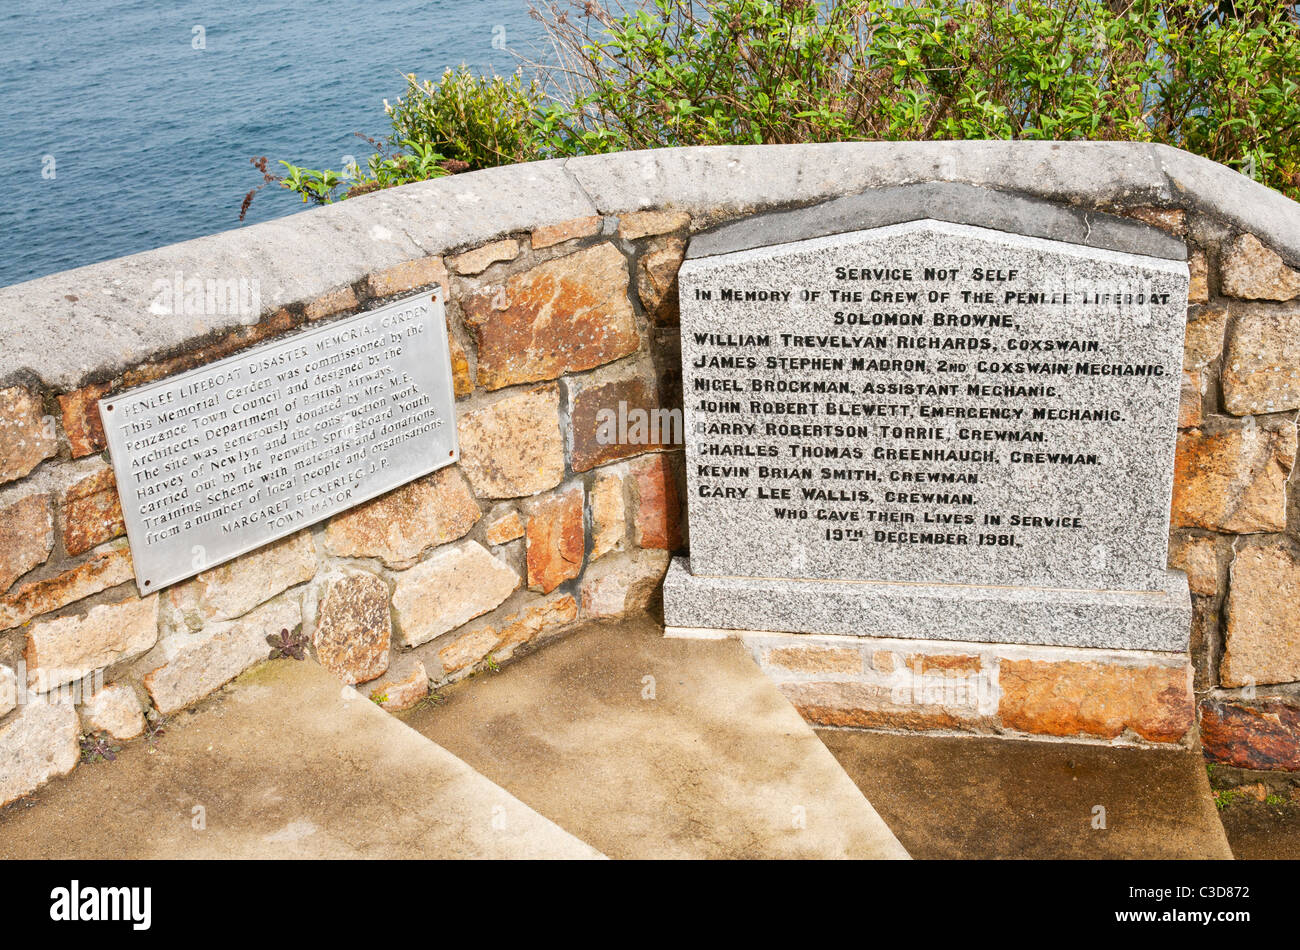 Memorial to the crew of the Penlee Lifeboat Solomon Browne which was lost at sea 19th December 1981 - Stock Image